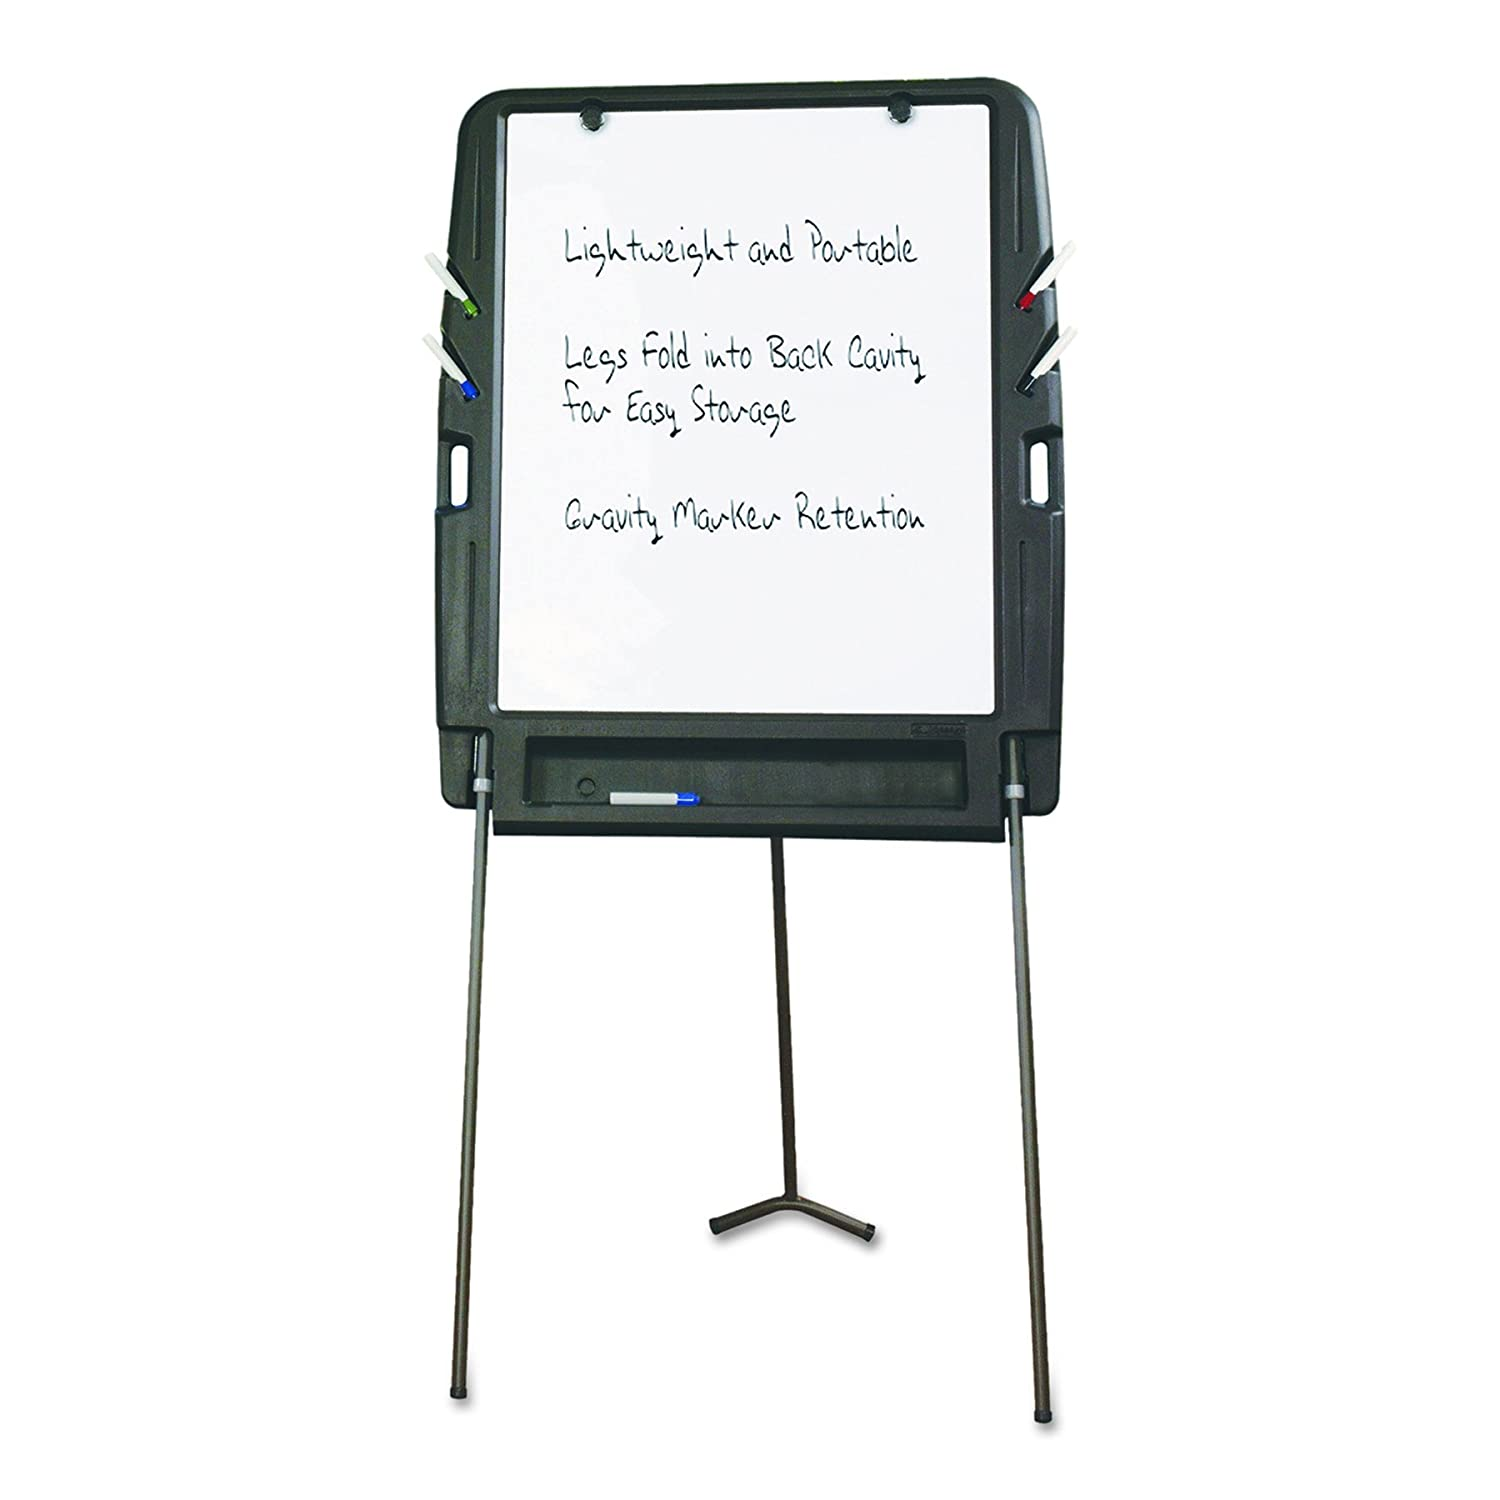 Iceberg ICE30227 Portable Flipchart Easel with Dry Erase Whiteboard Surface 35 Length x 30 Width x 73 Height Blow-molded Plastic Frame Charcoal